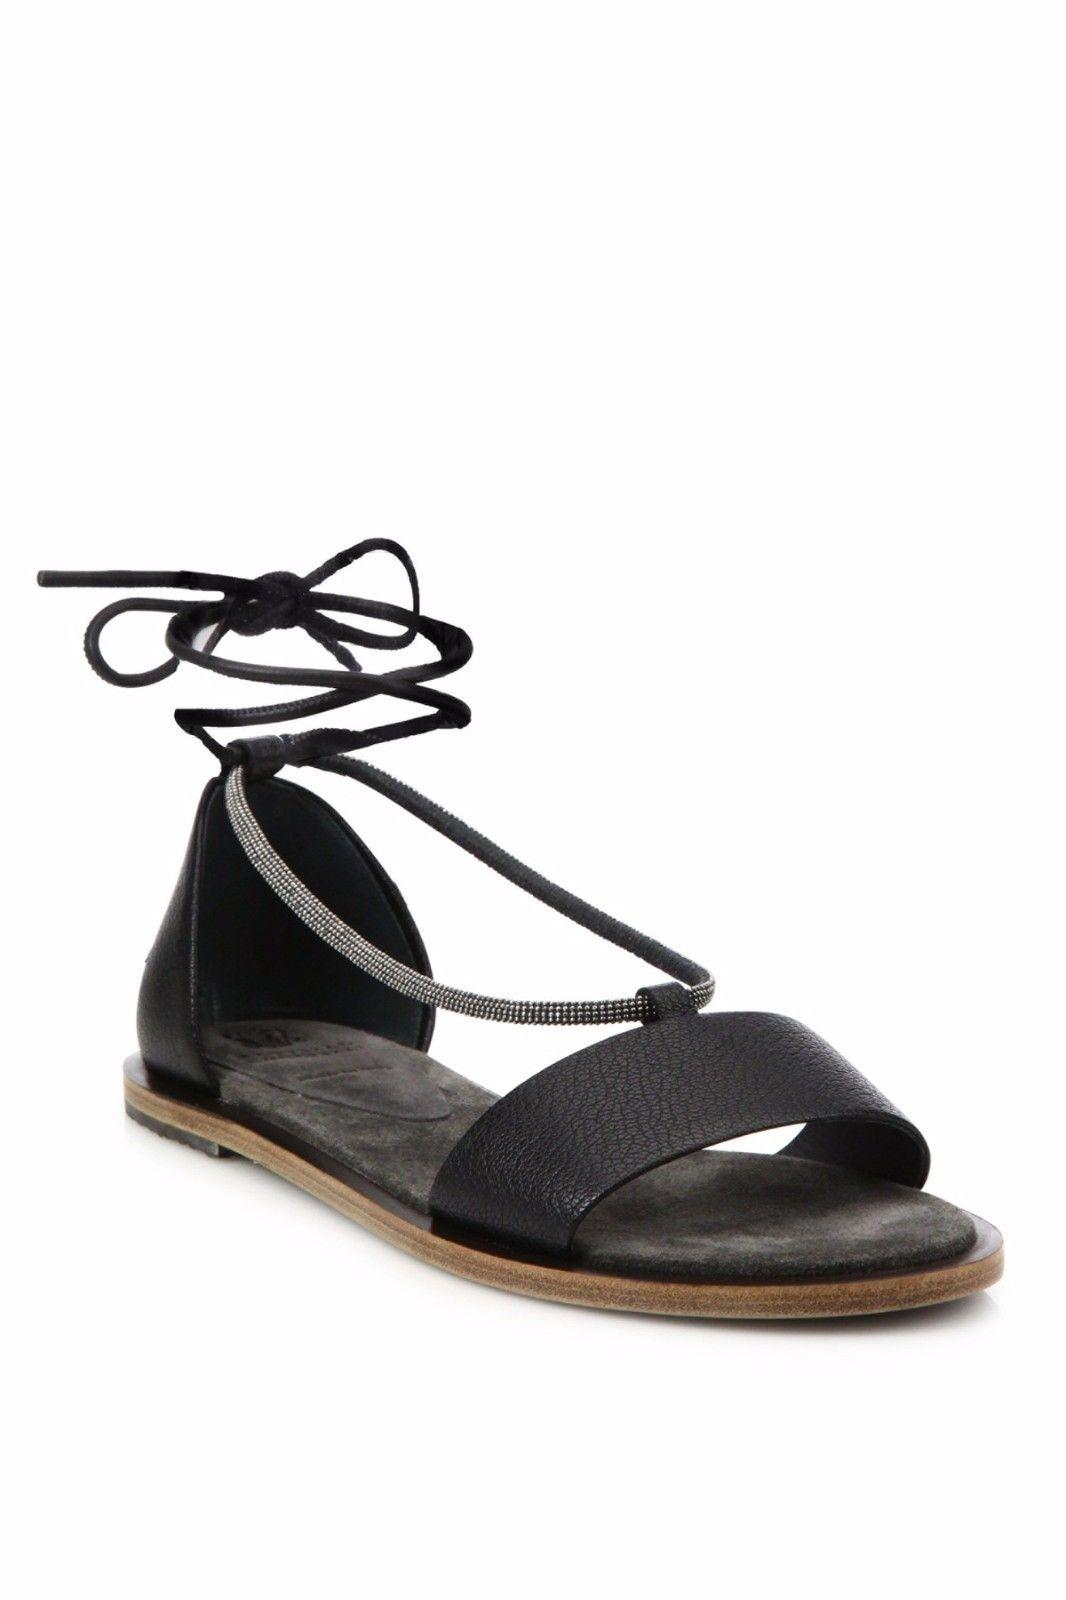 Brunello Cucinelli Monili-Trimmed Slingback Wedges free shipping best sale outlet find great cheap sale amazing price Inexpensive sale online hFAiO8E69b